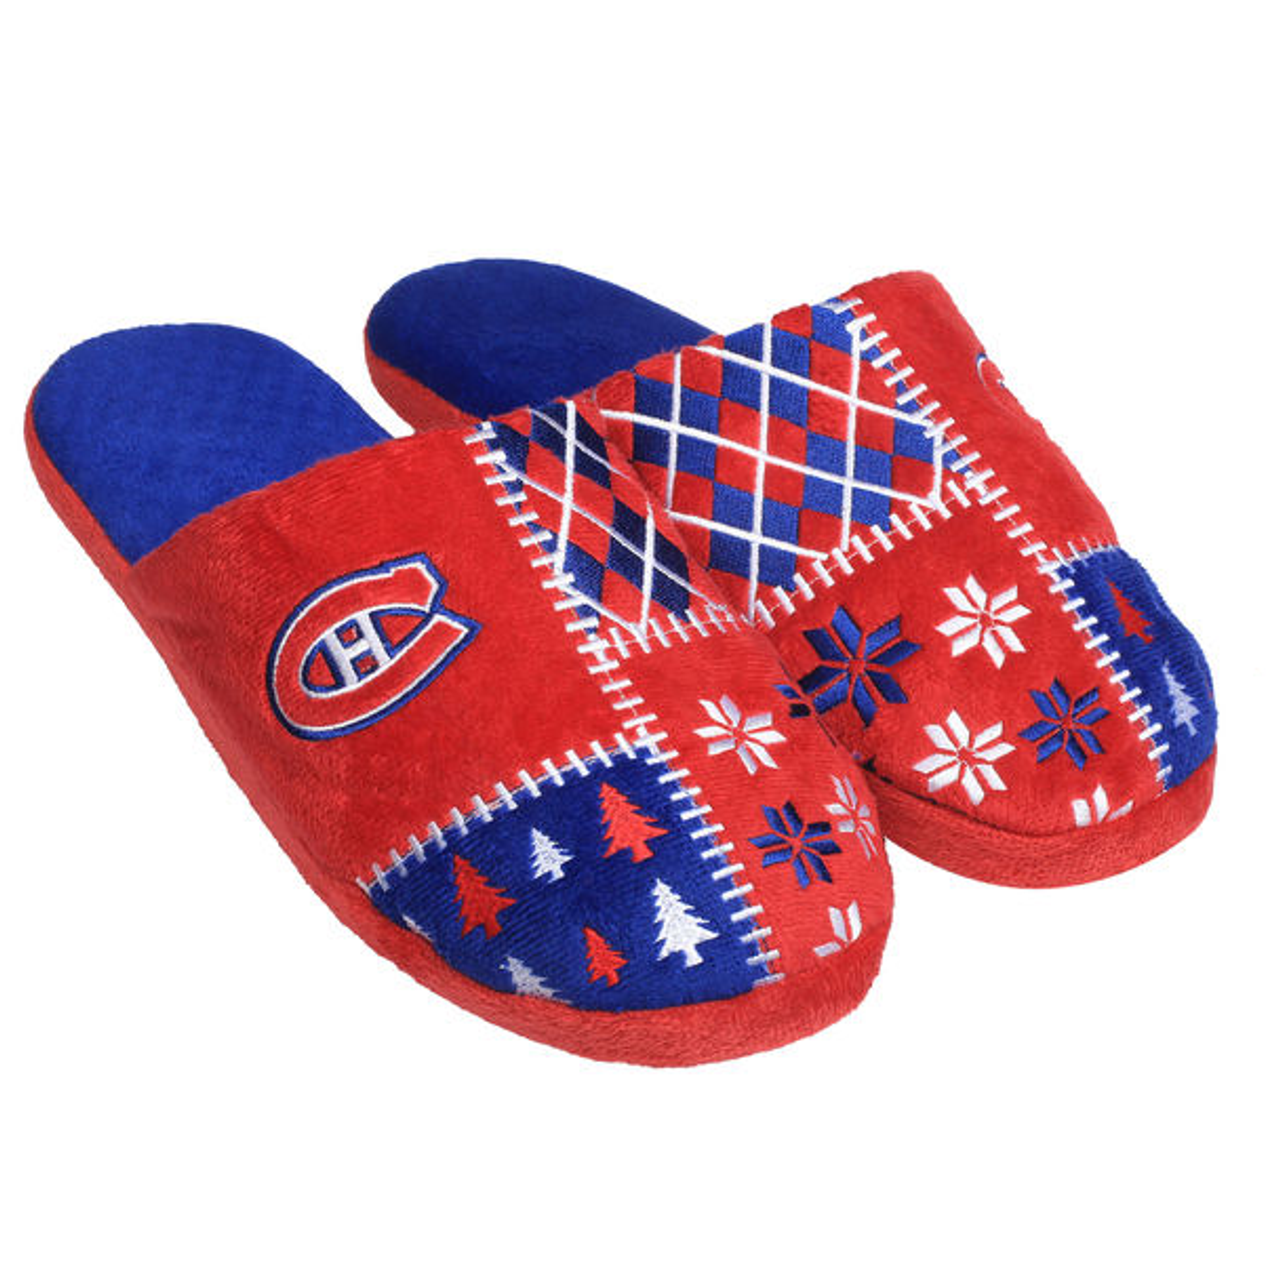 buy online 26423 2600c Montreal Canadiens Ugly Sweater Slippers NHL